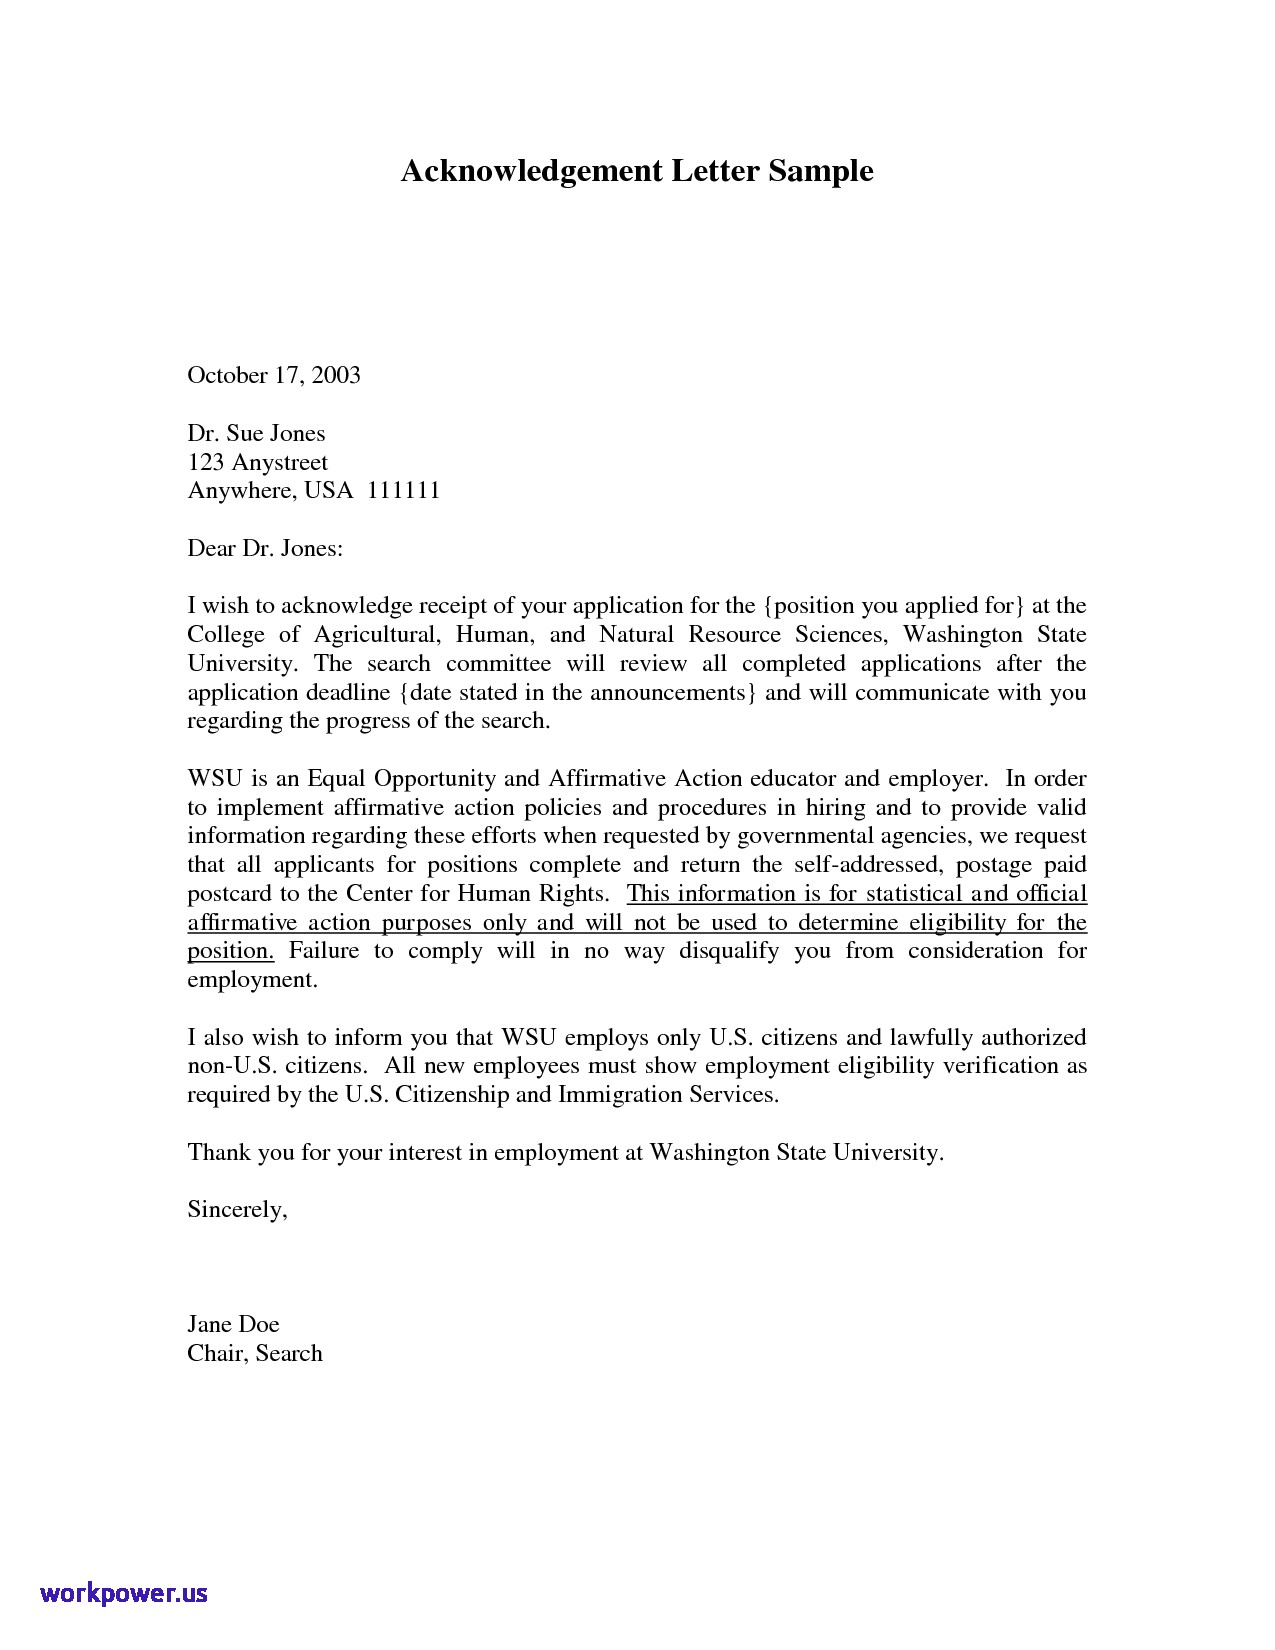 Immigration Recommendation Letter Template - Immigration Re Mendation Letter Sample Marriage